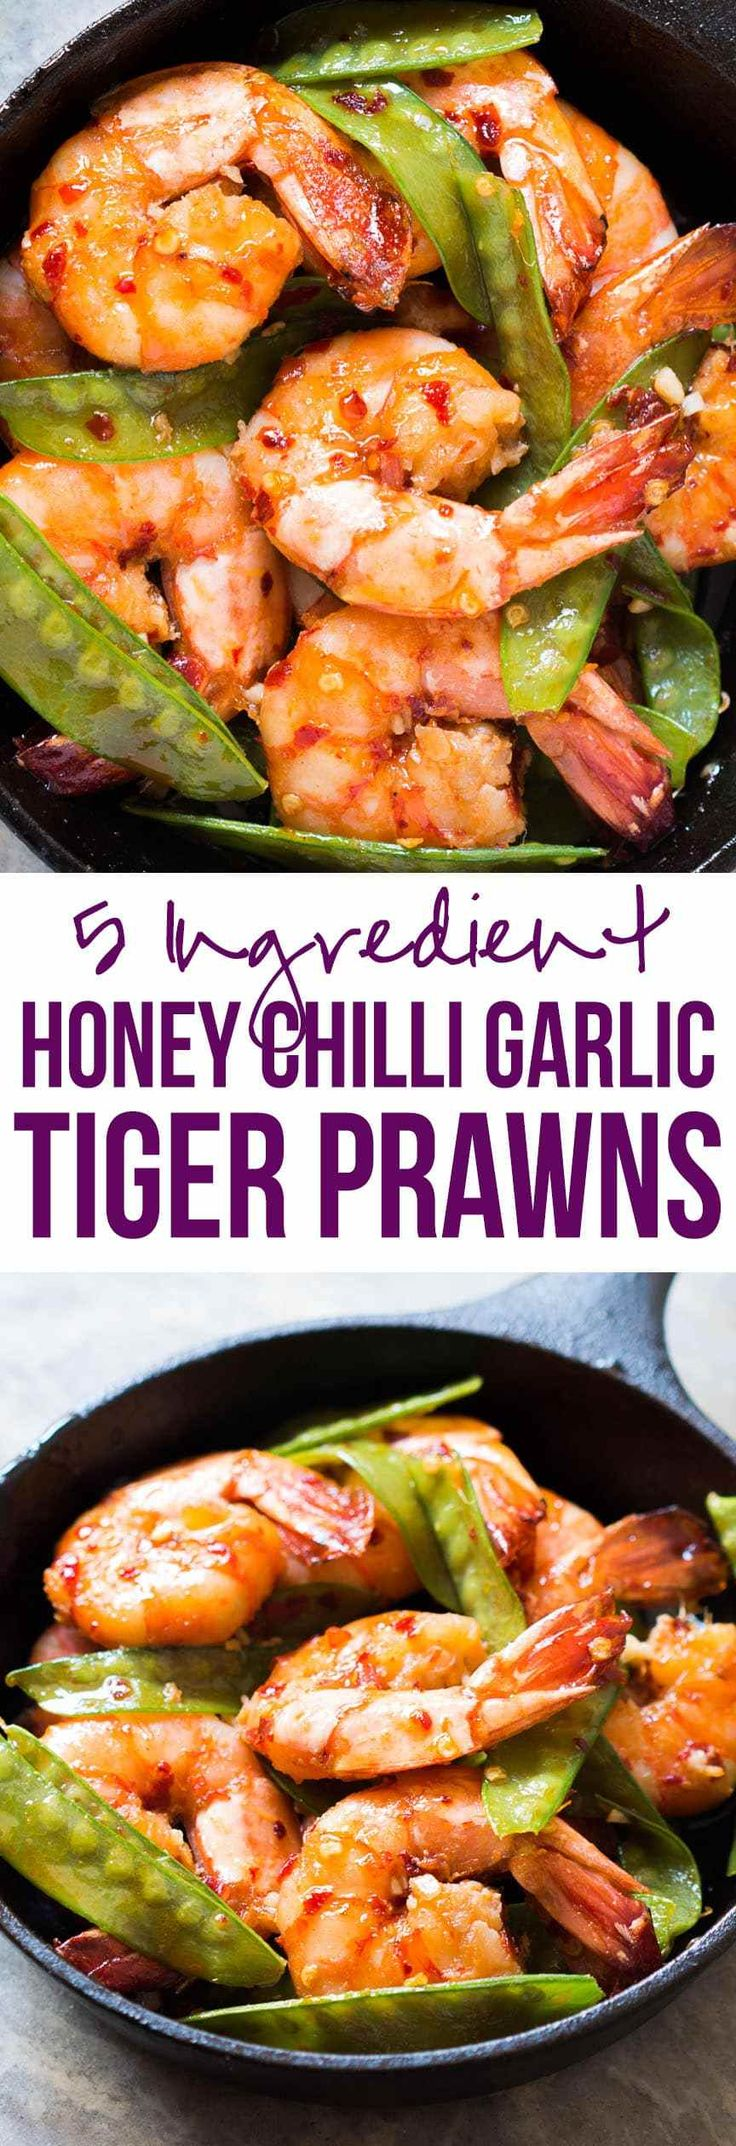 Looking for meals under 15 minutes? This is it - 5 ingredient honey garlic chilli tiger prawns! All the asian flavours you love in this one easy recipe!